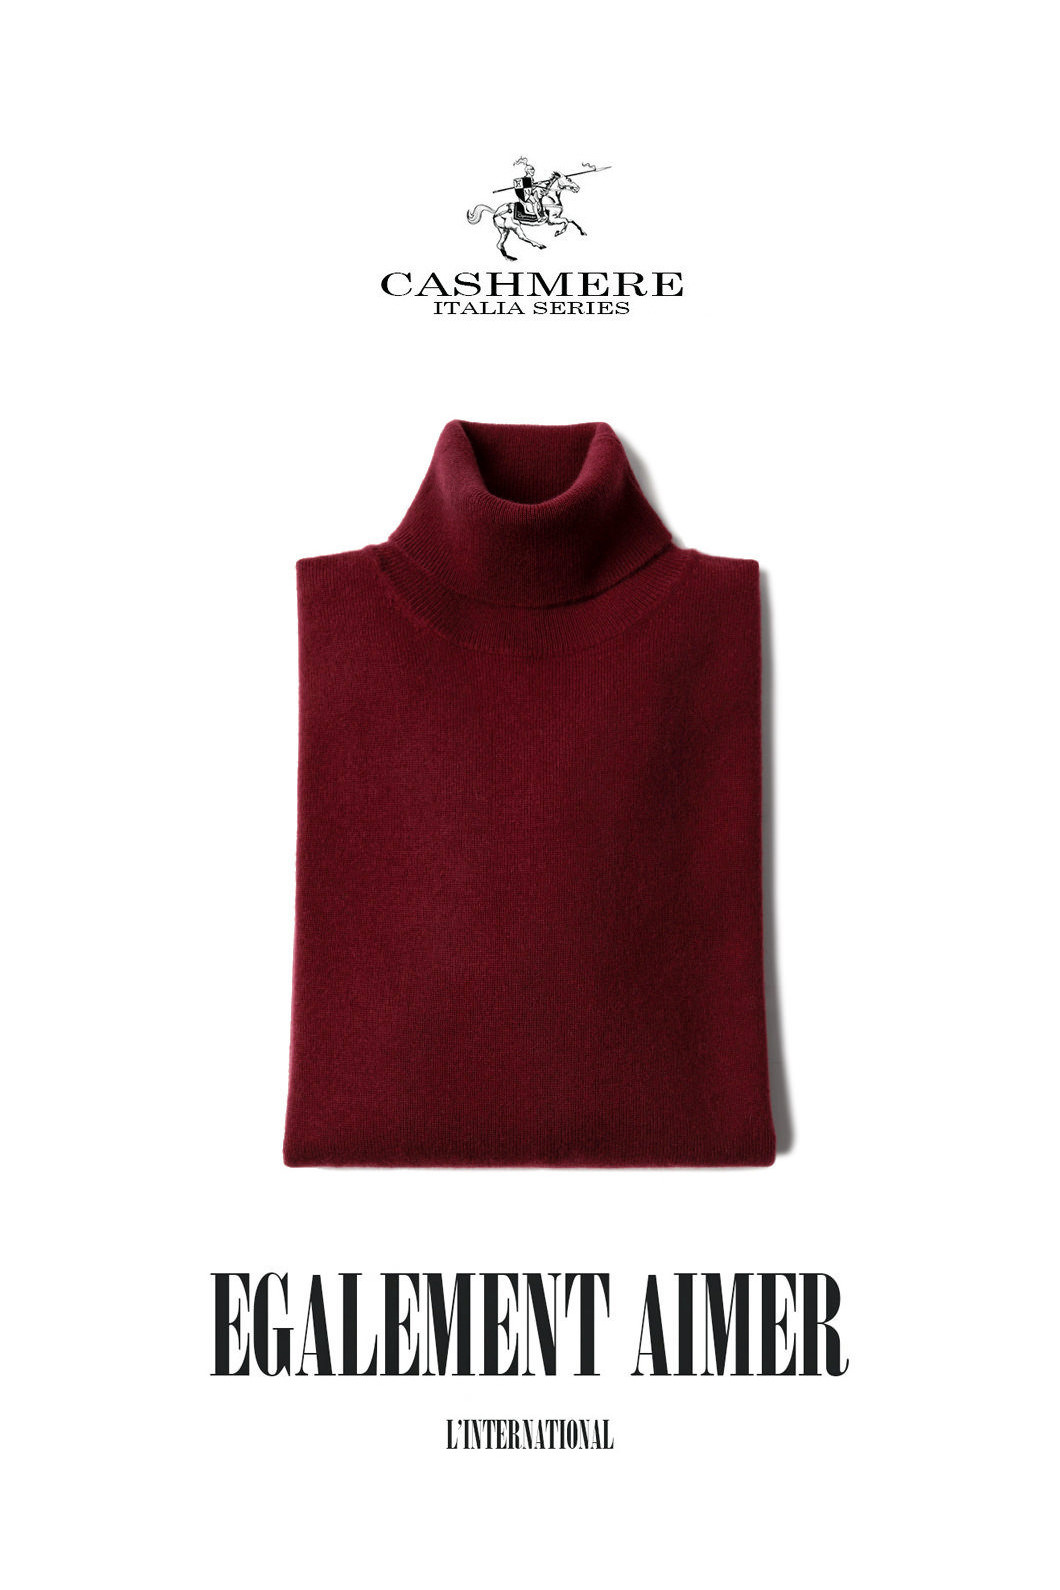 457 ROYAL CASHMERE TURTLENECK-FORTE WINE마지막수량 할인